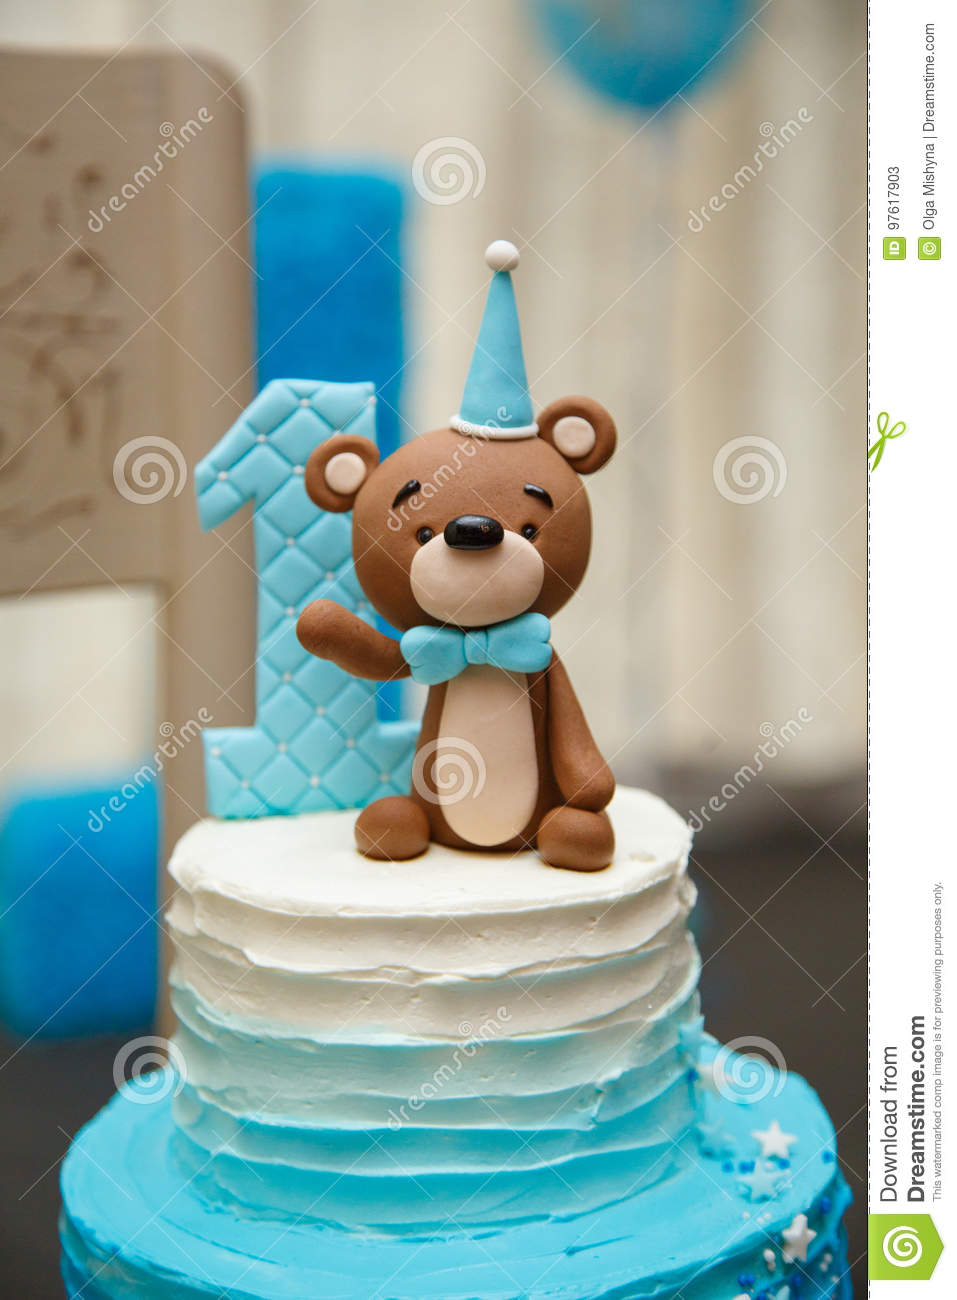 Surprising Anazing Cake For Boy S First Birthday Stock Image Image Of Personalised Birthday Cards Veneteletsinfo